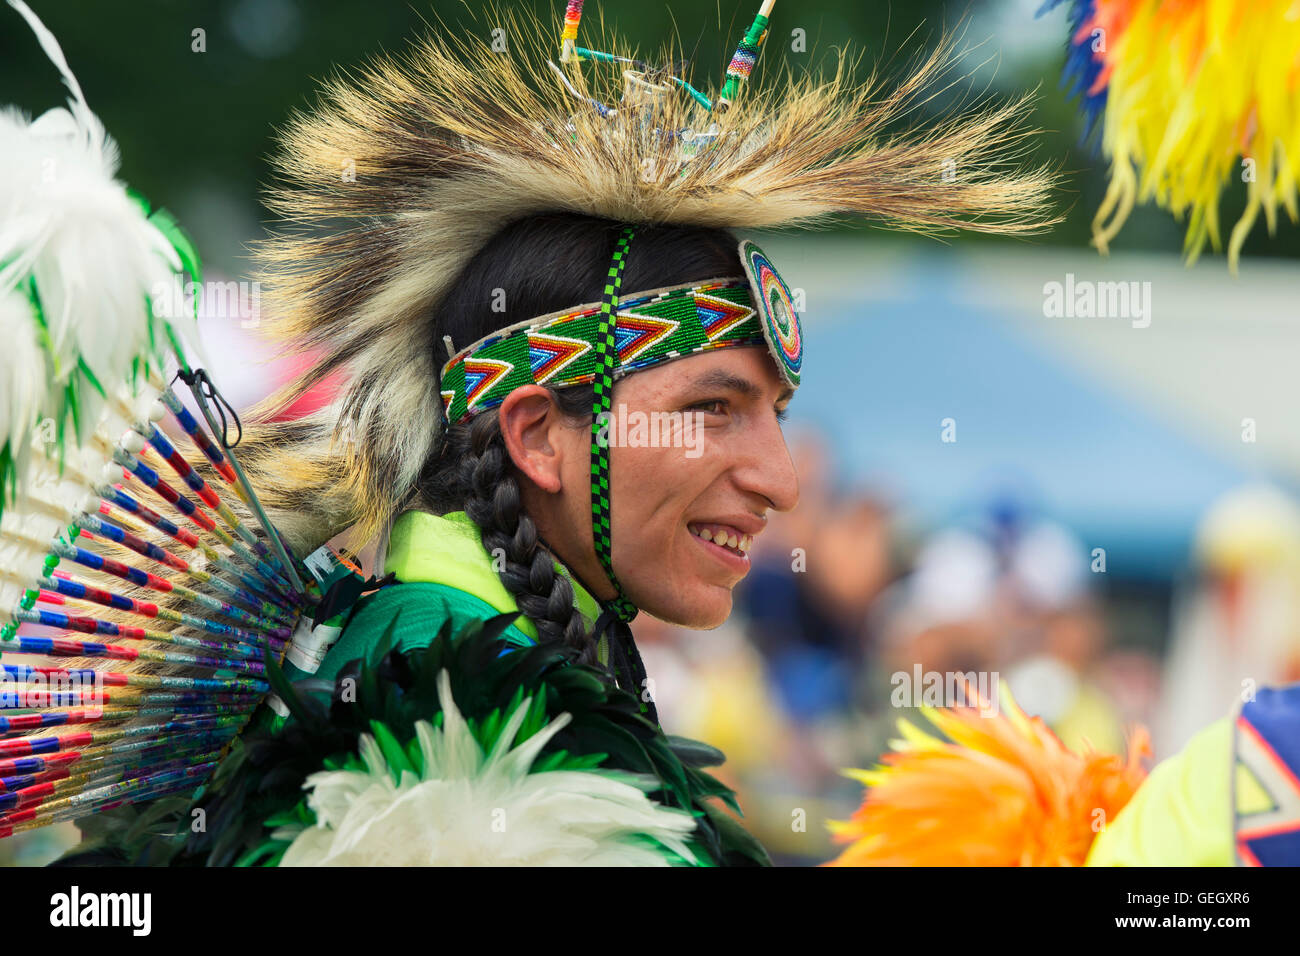 Pow Wow Native Dancer in Traditional Costume at the Six Nations of the Grand River Champion of Champions Powwow, - Stock Image